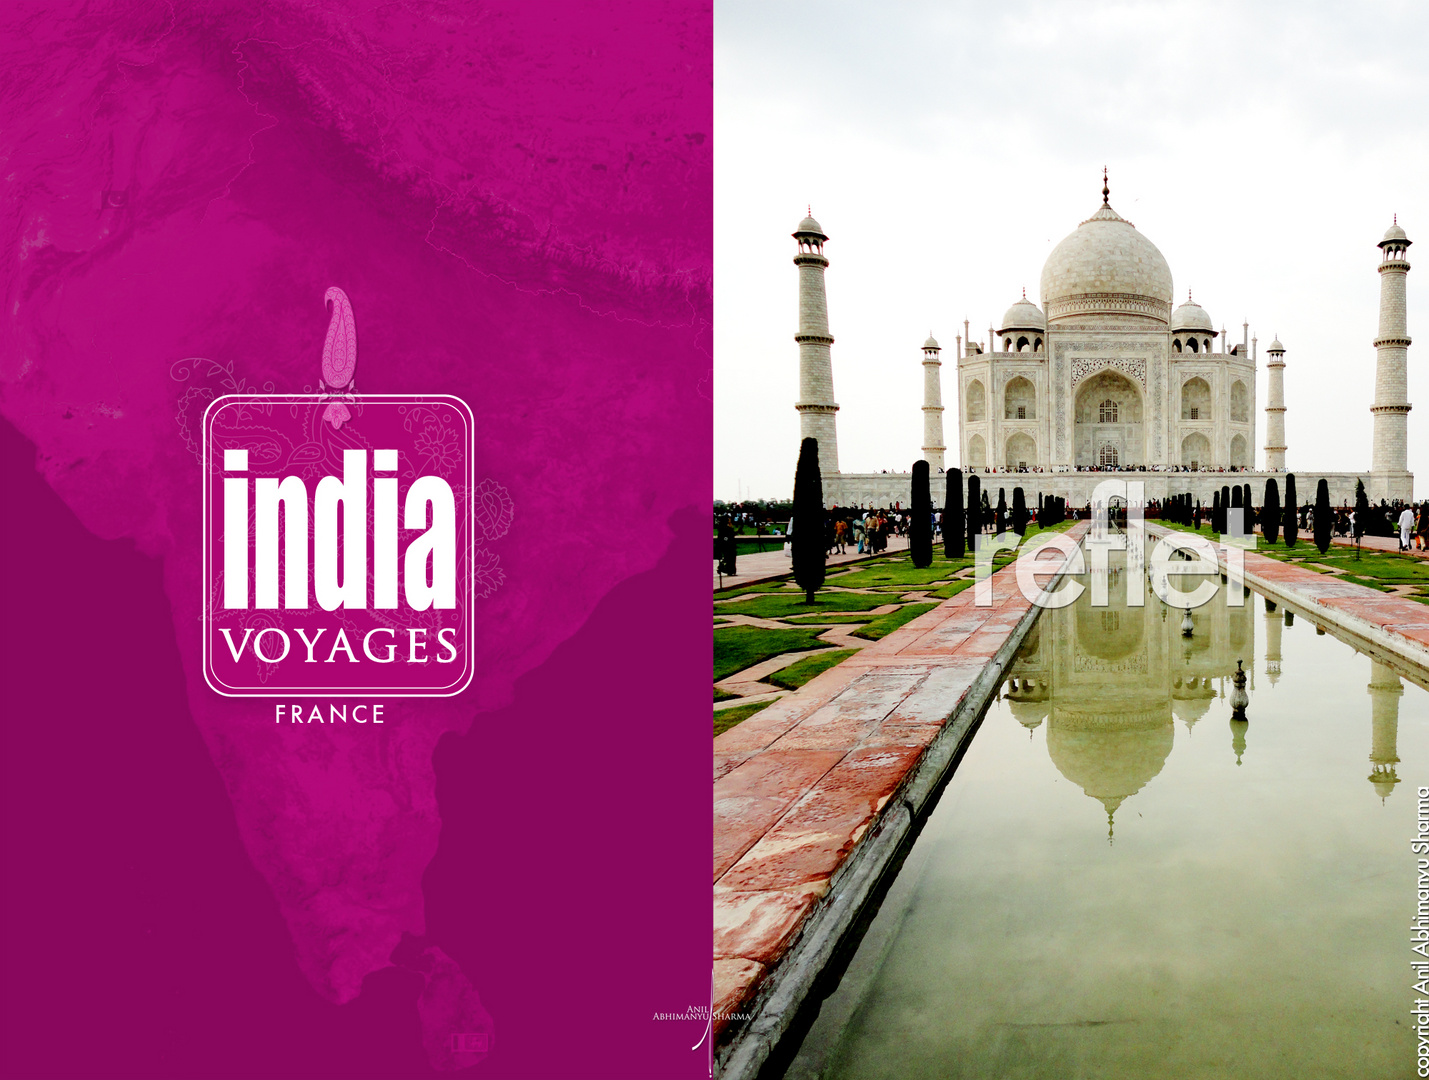 India Voyages France_The Most Beautiful Wonder of the World ;)